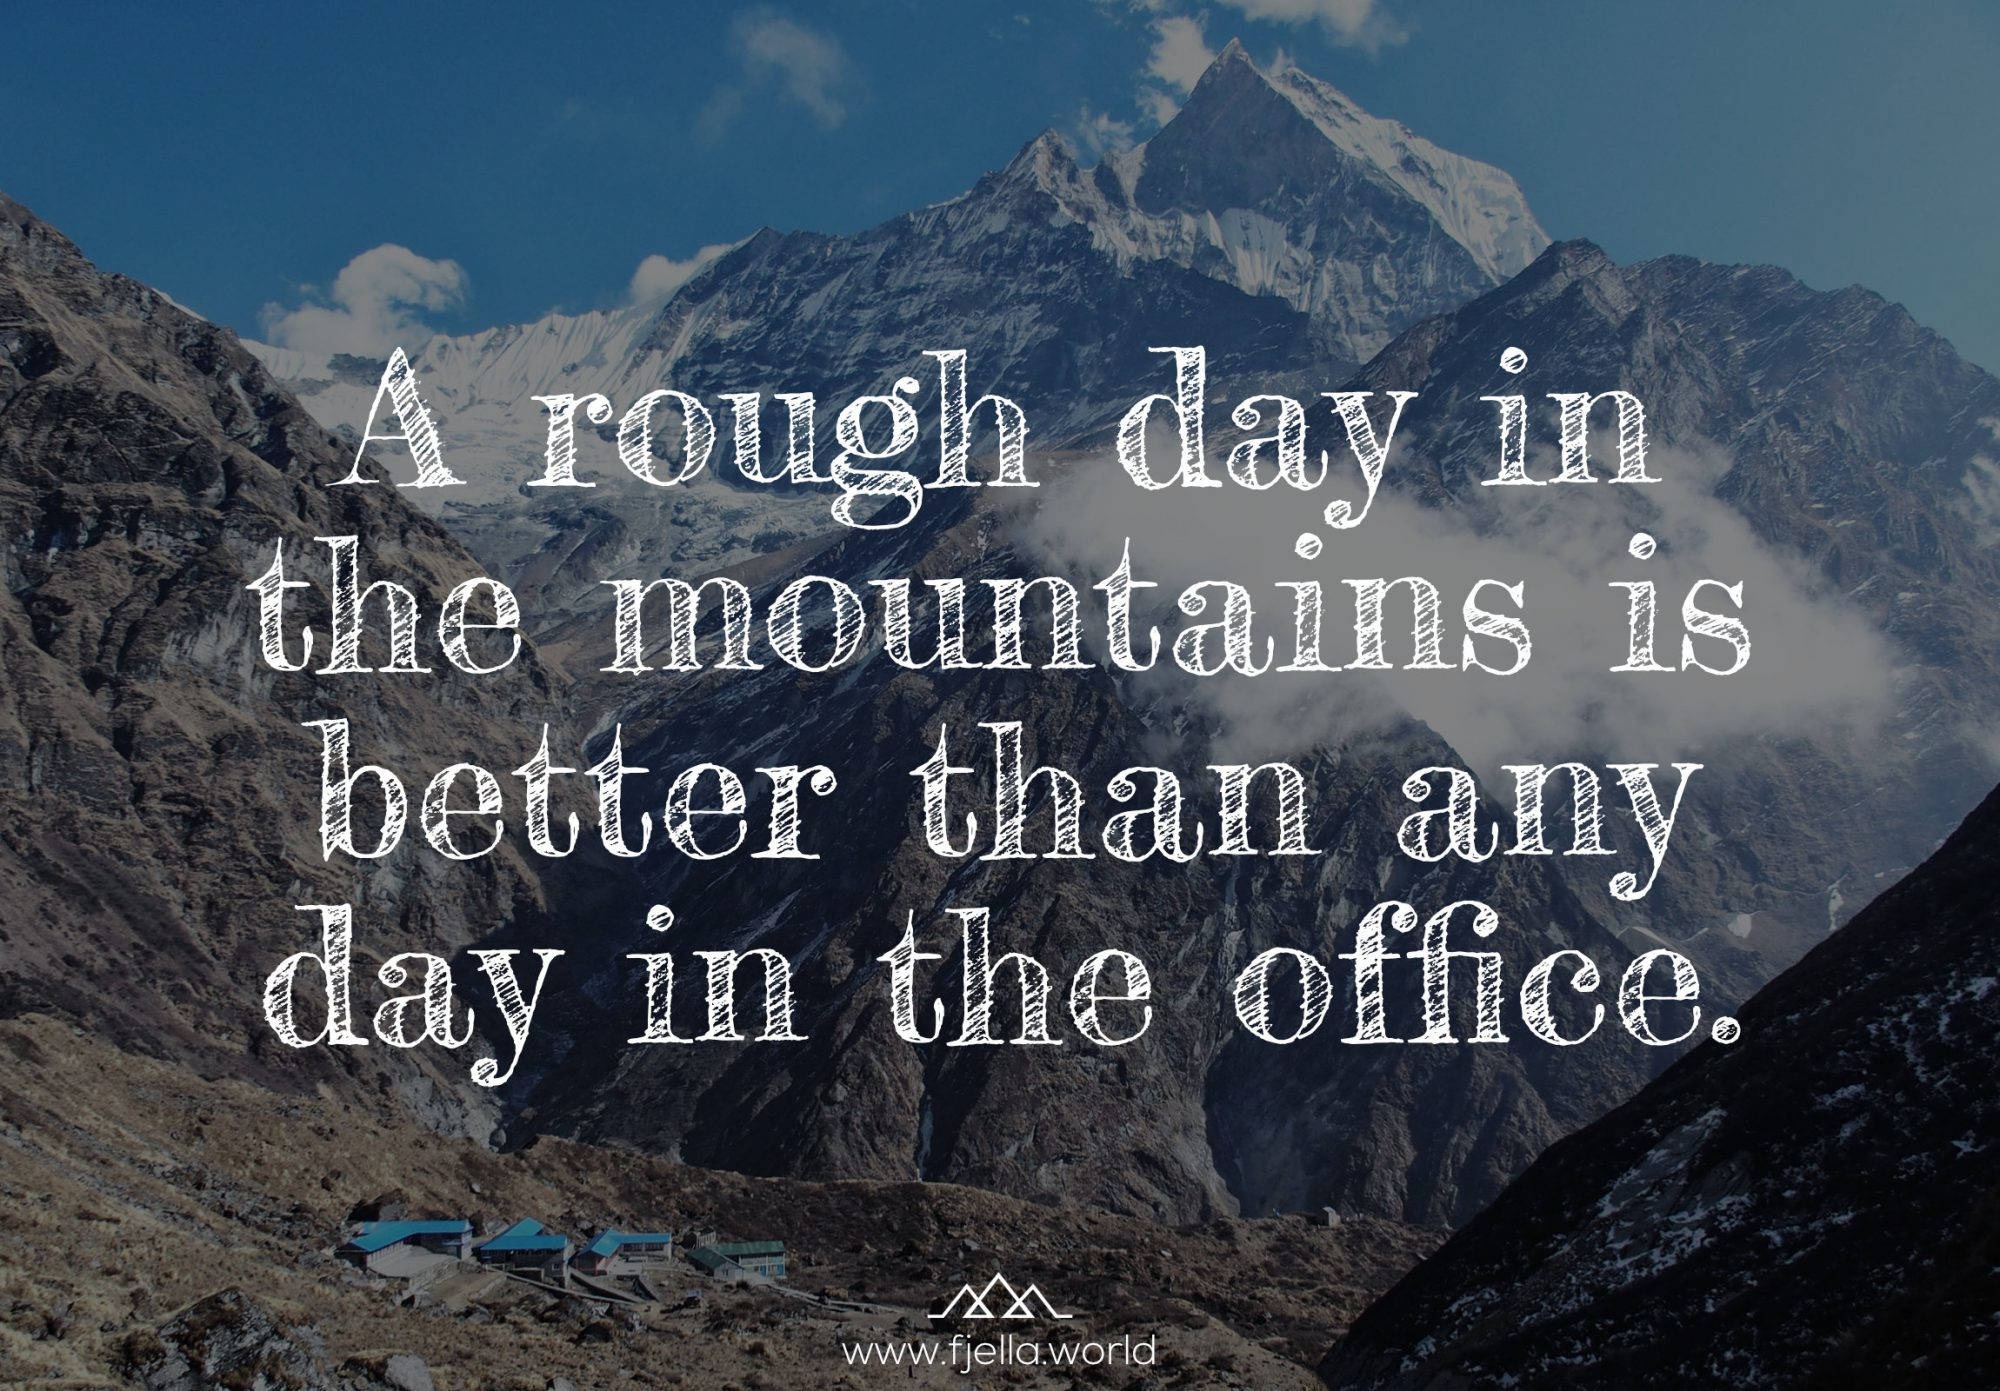 A rough day in the mountains is better than any day in the office. Wandersprüche, Sprüche Wandern, Zitate Wandern, Wanderzitate, Bergzitate, Motivation Zitate, Inspiration Zitate, Motivation